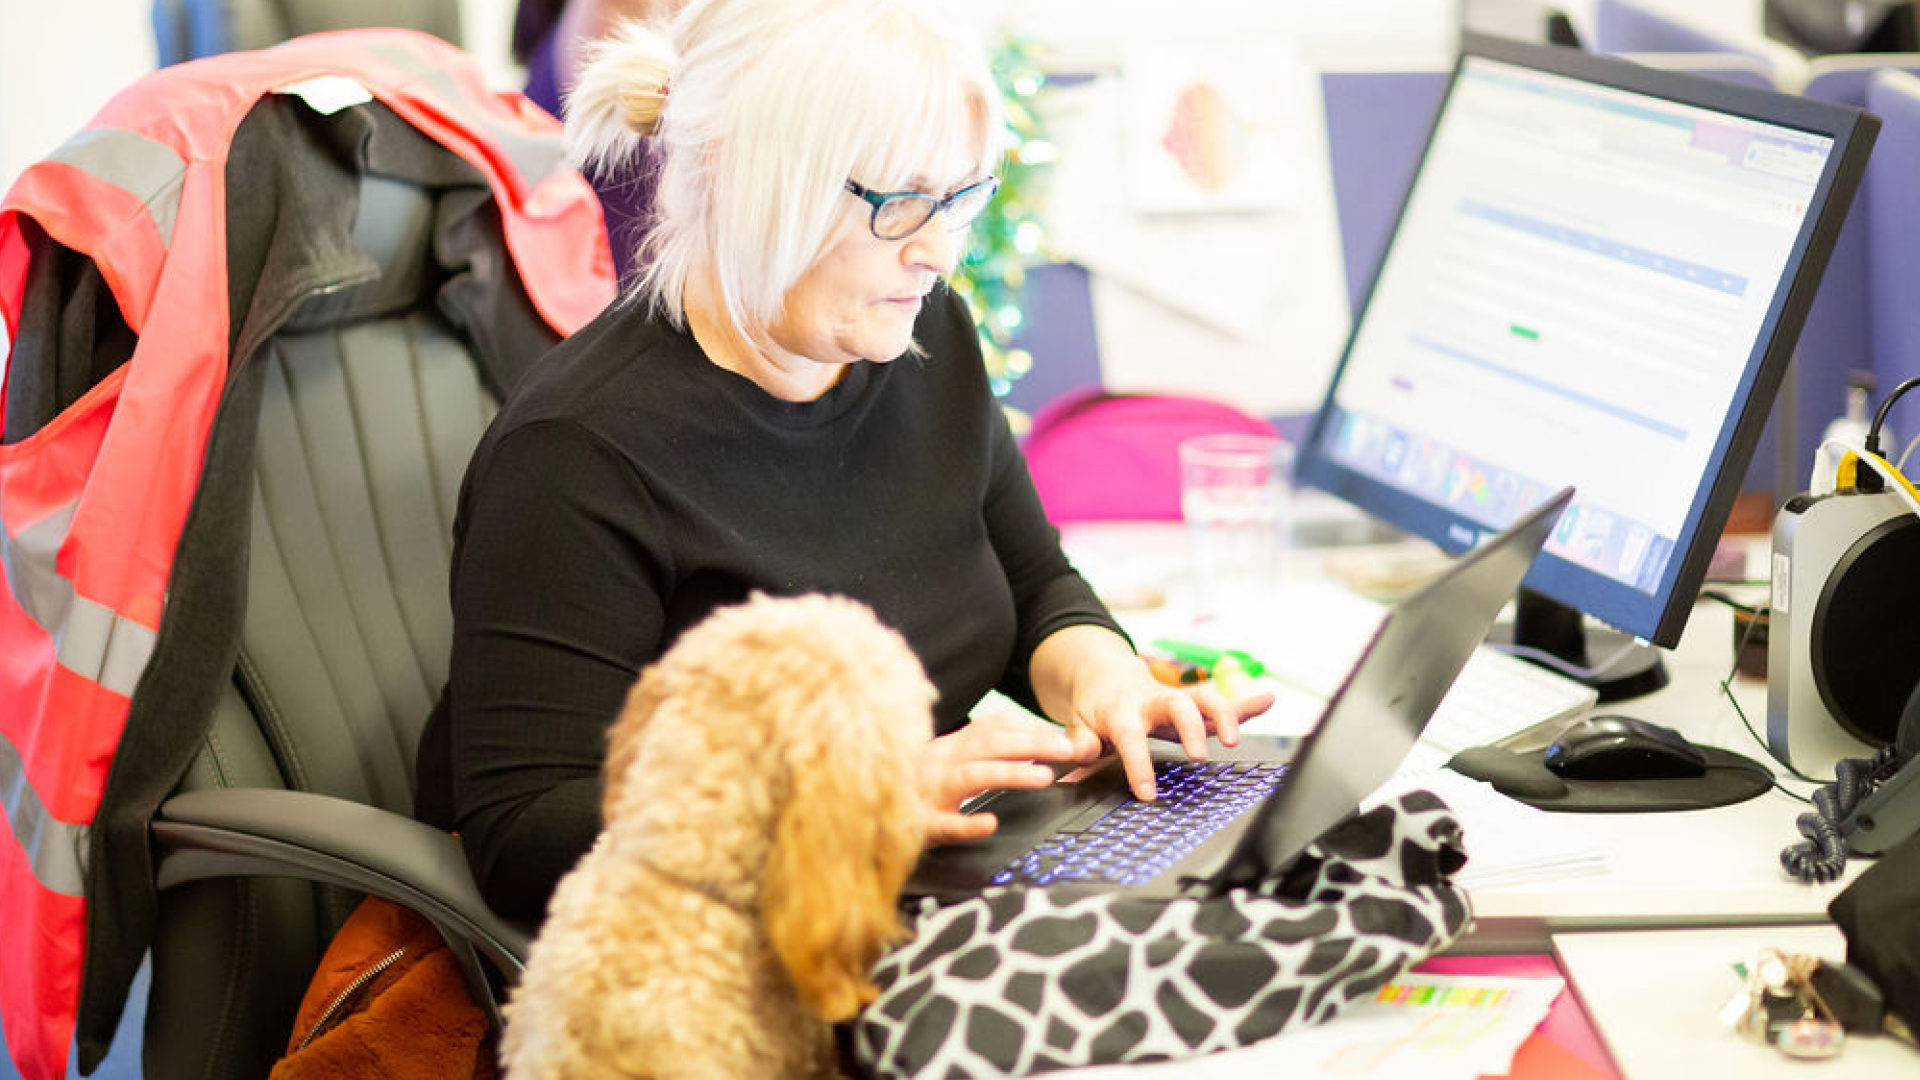 Guardian Angel Carers is using world-class IT to make life easier for franchisees.